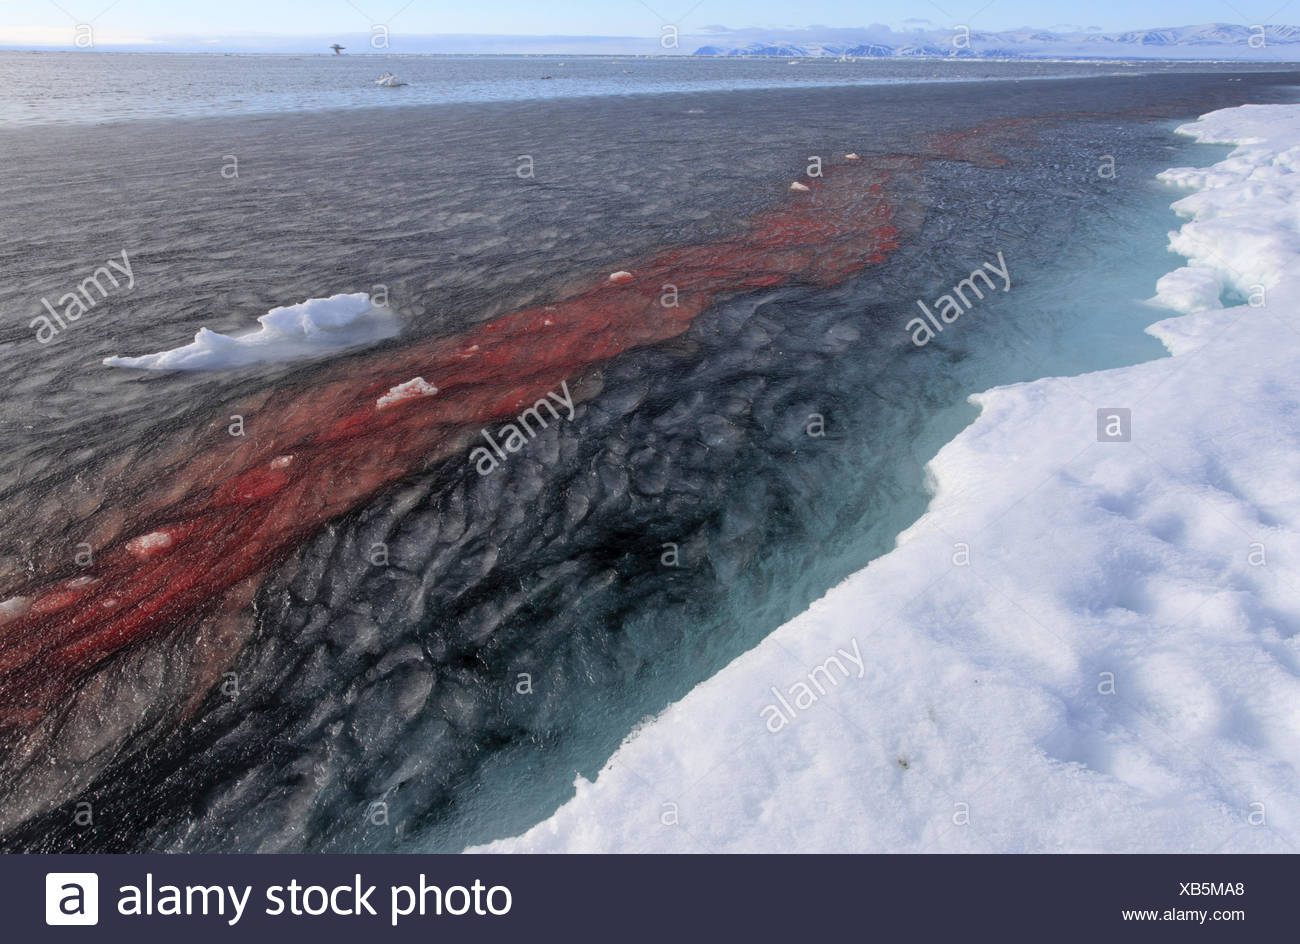 North America, Canada, Nordkanada, Nunavut, Baffin Iceland, Eclipse sound, Pond Inlet, Inuit, whale hunt, hunter, narwhal, disassemble, water, trail of blood, - Stock Image